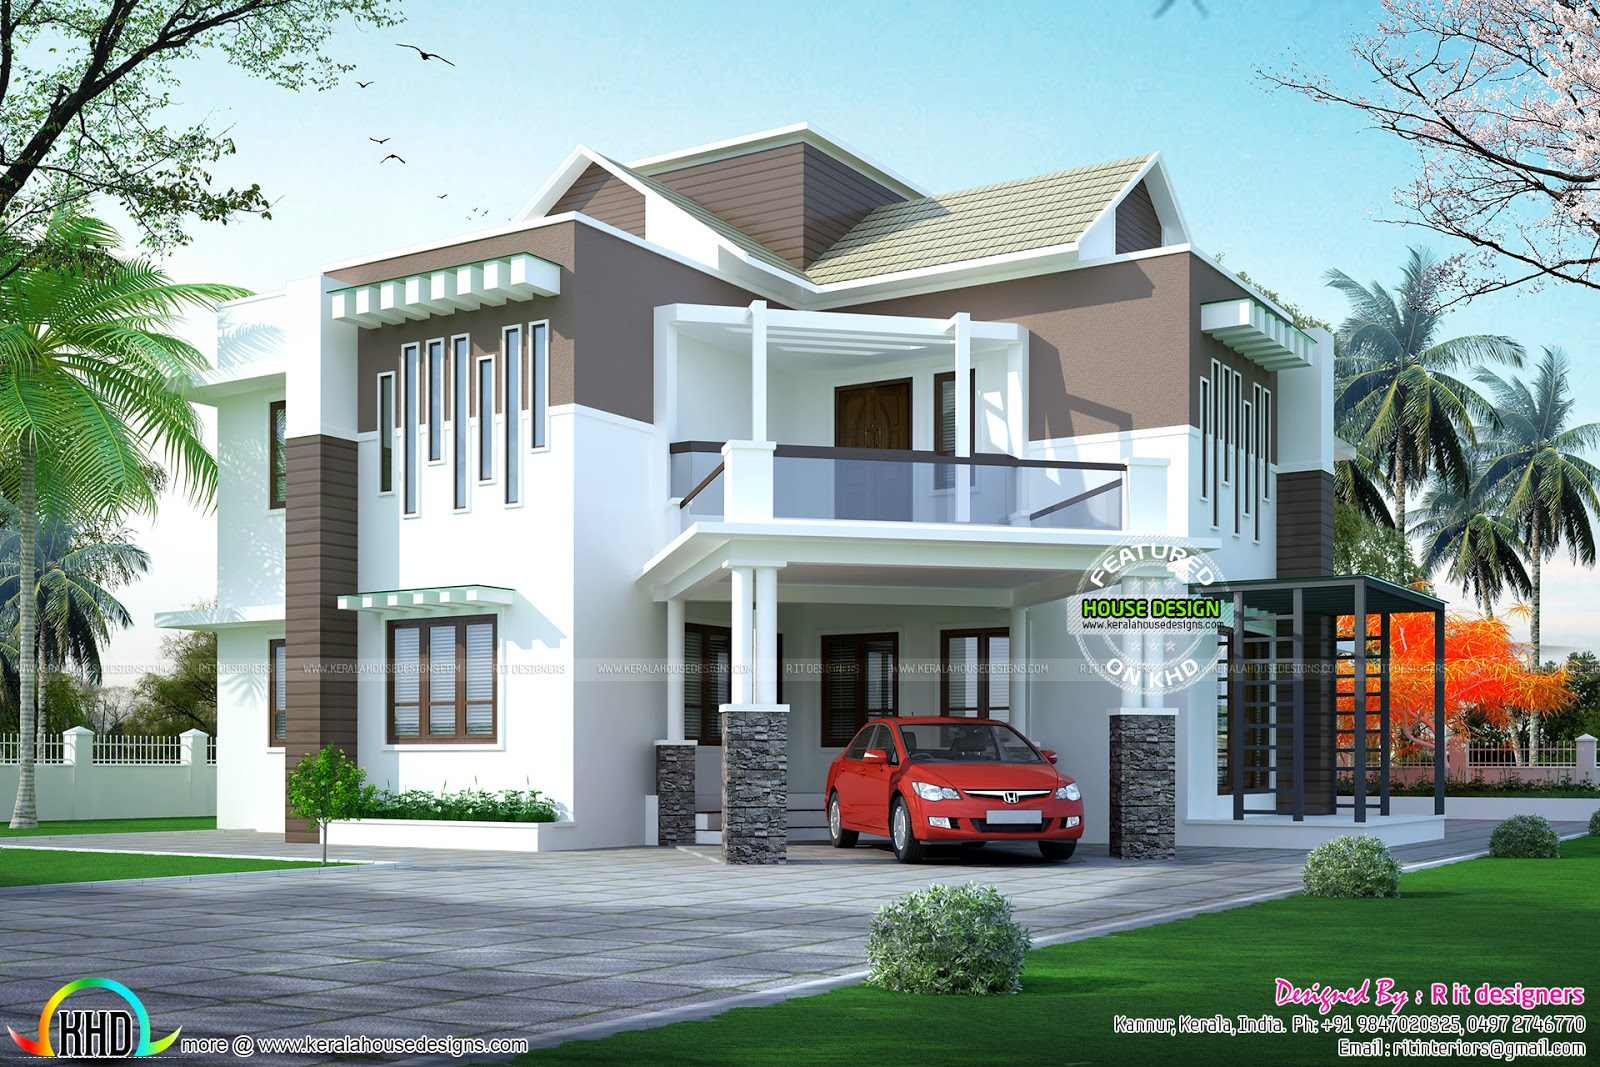 Slope Roof Over Flat Roof Home Kerala Home Design And